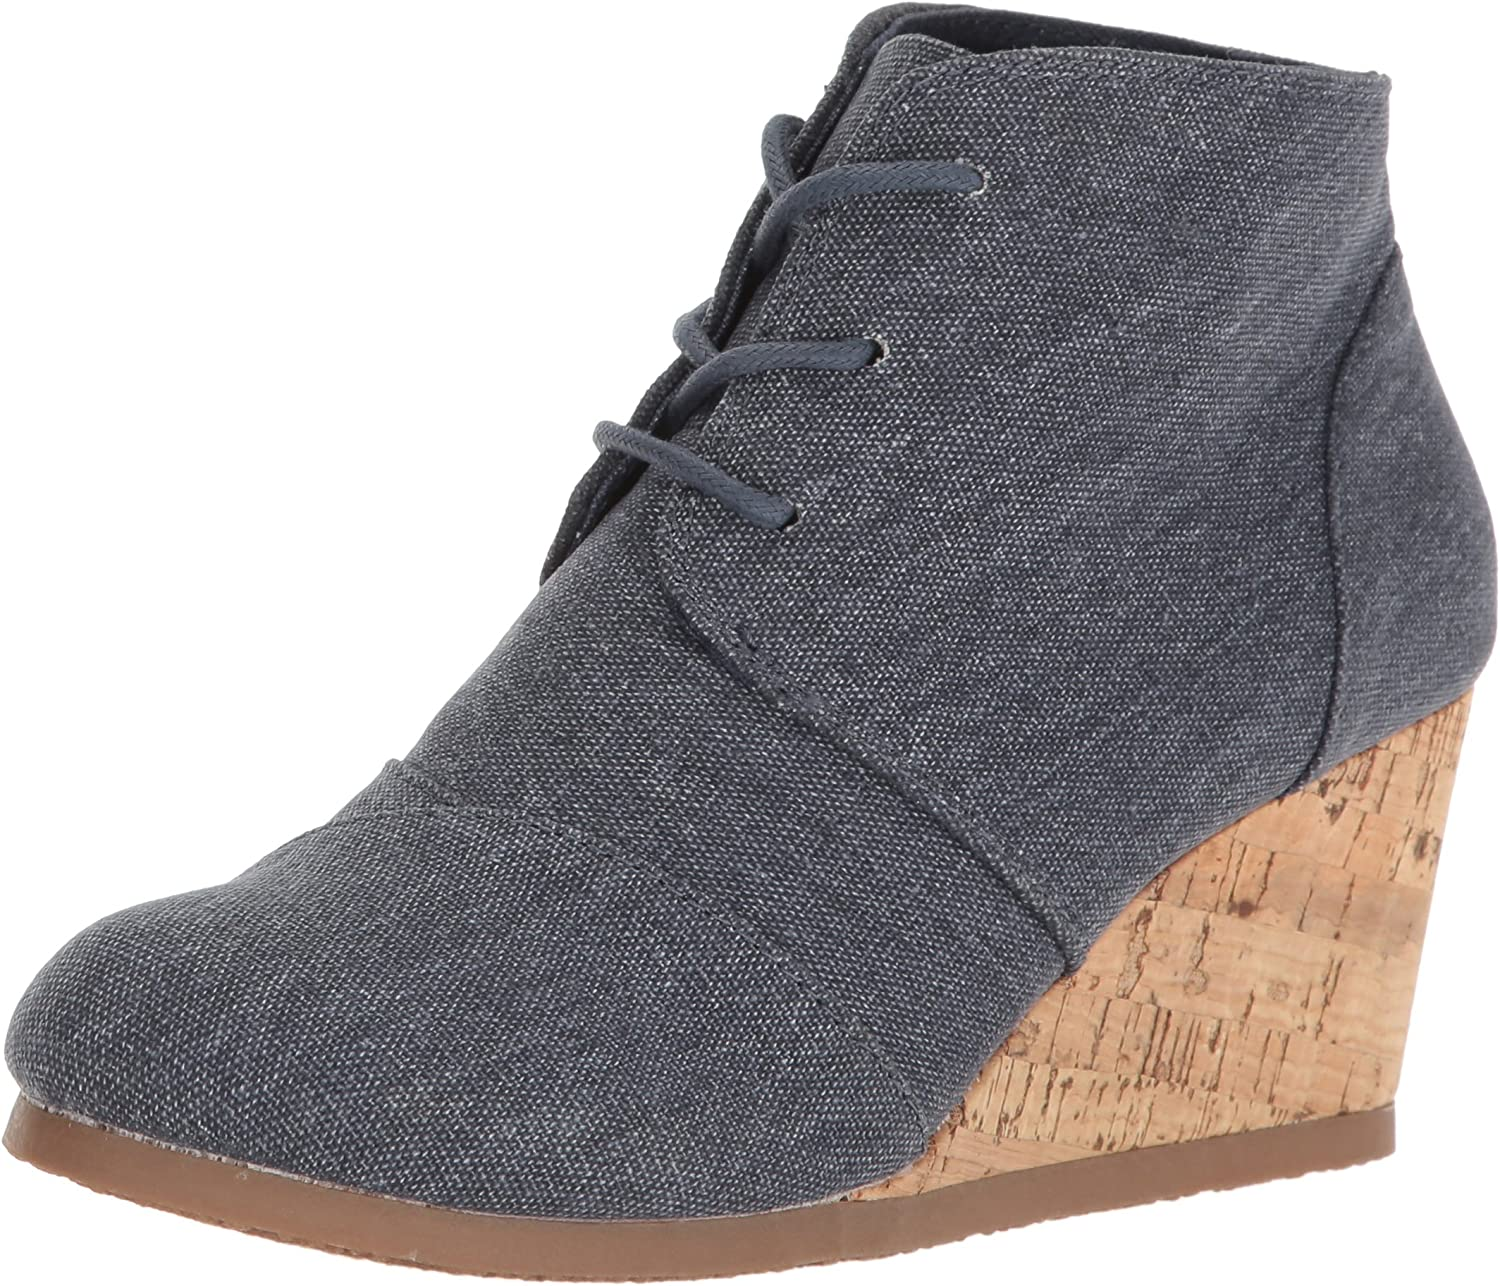 Sugar Womens SGR-Maybee Ankle Bootie